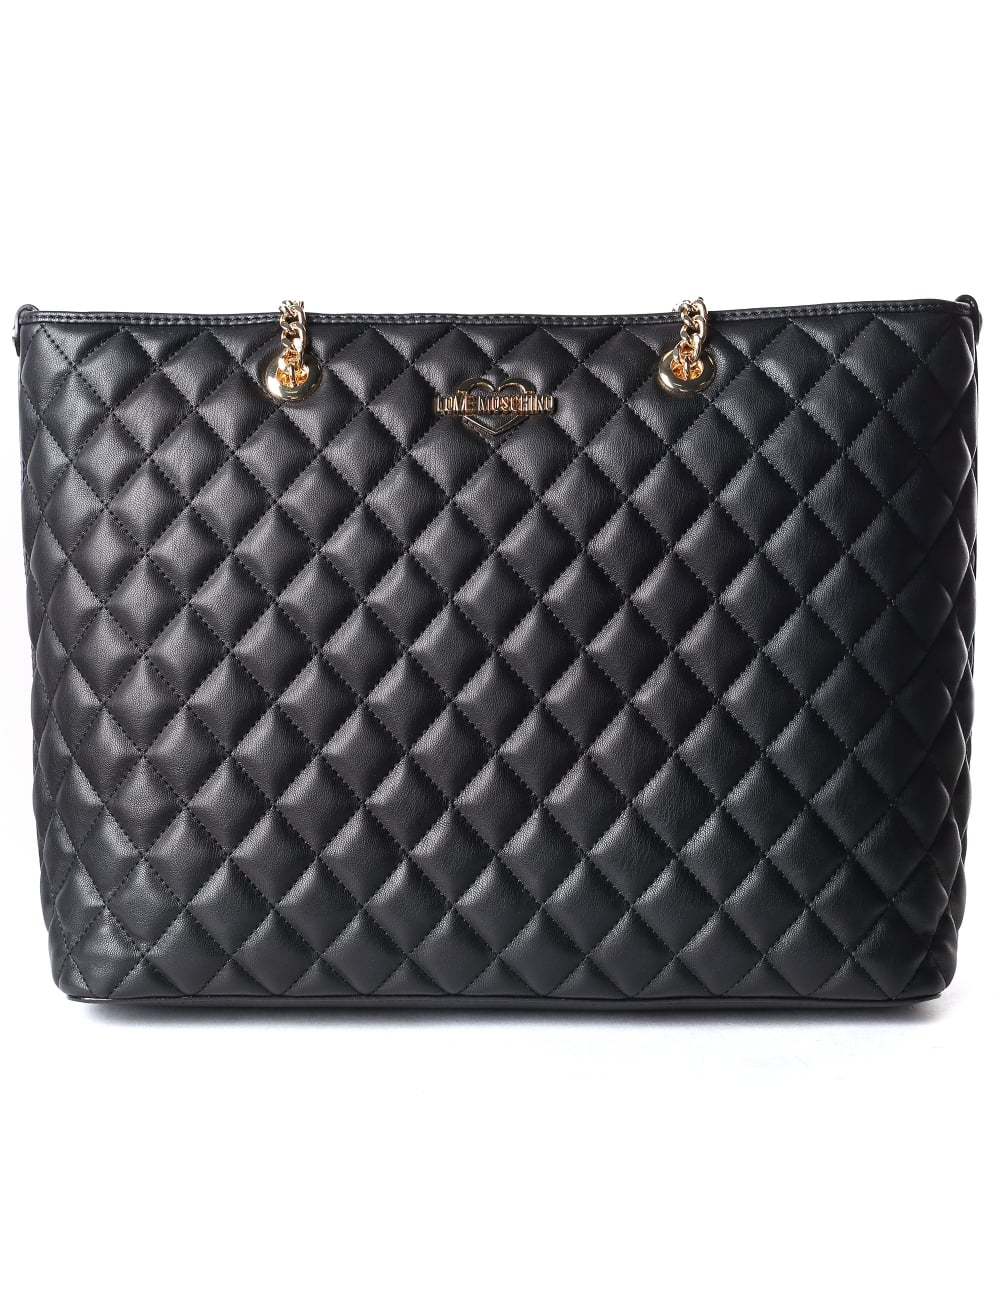 99b21333db Moschino Women's Quilted Shopper Bag